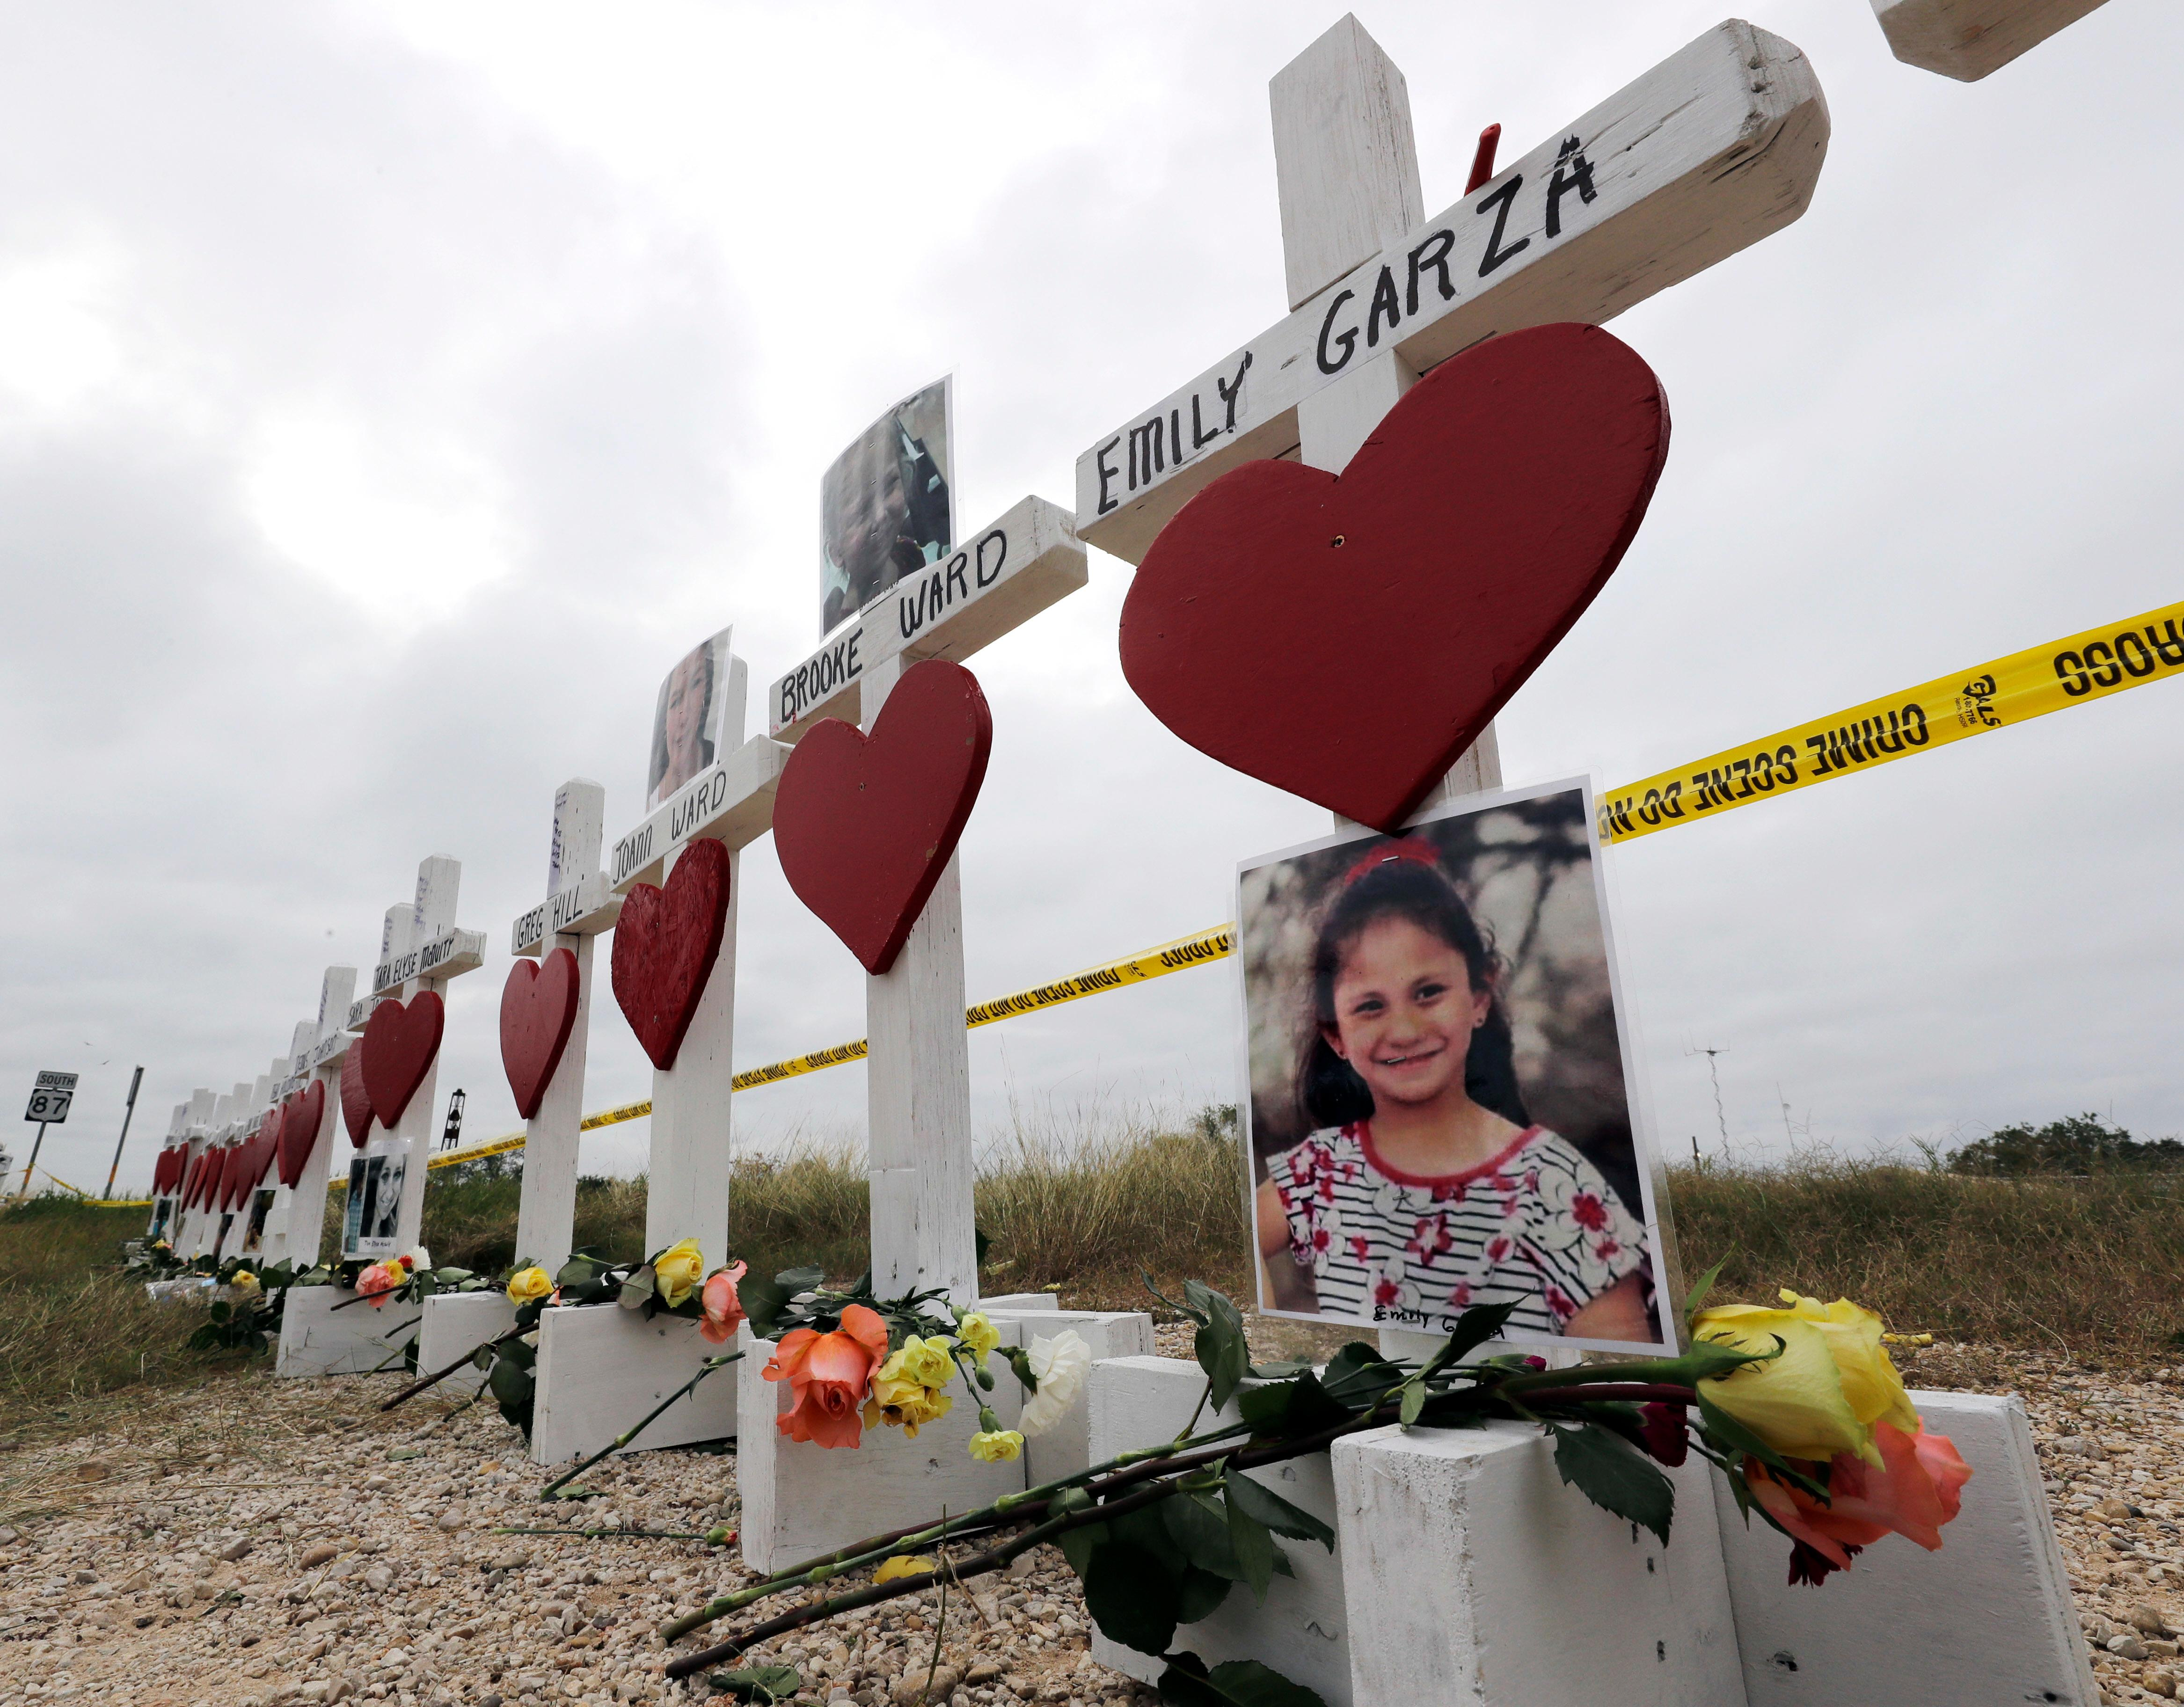 Crosses showing shooting victims names stand near the First Baptist Church on Thursday, Nov. 9, 2017, in Sutherland Springs, Texas. A man opened fire inside the church in the small South Texas community on Sunday, killing more than two dozen and injuring others. (AP Photo/David J. Phillip)